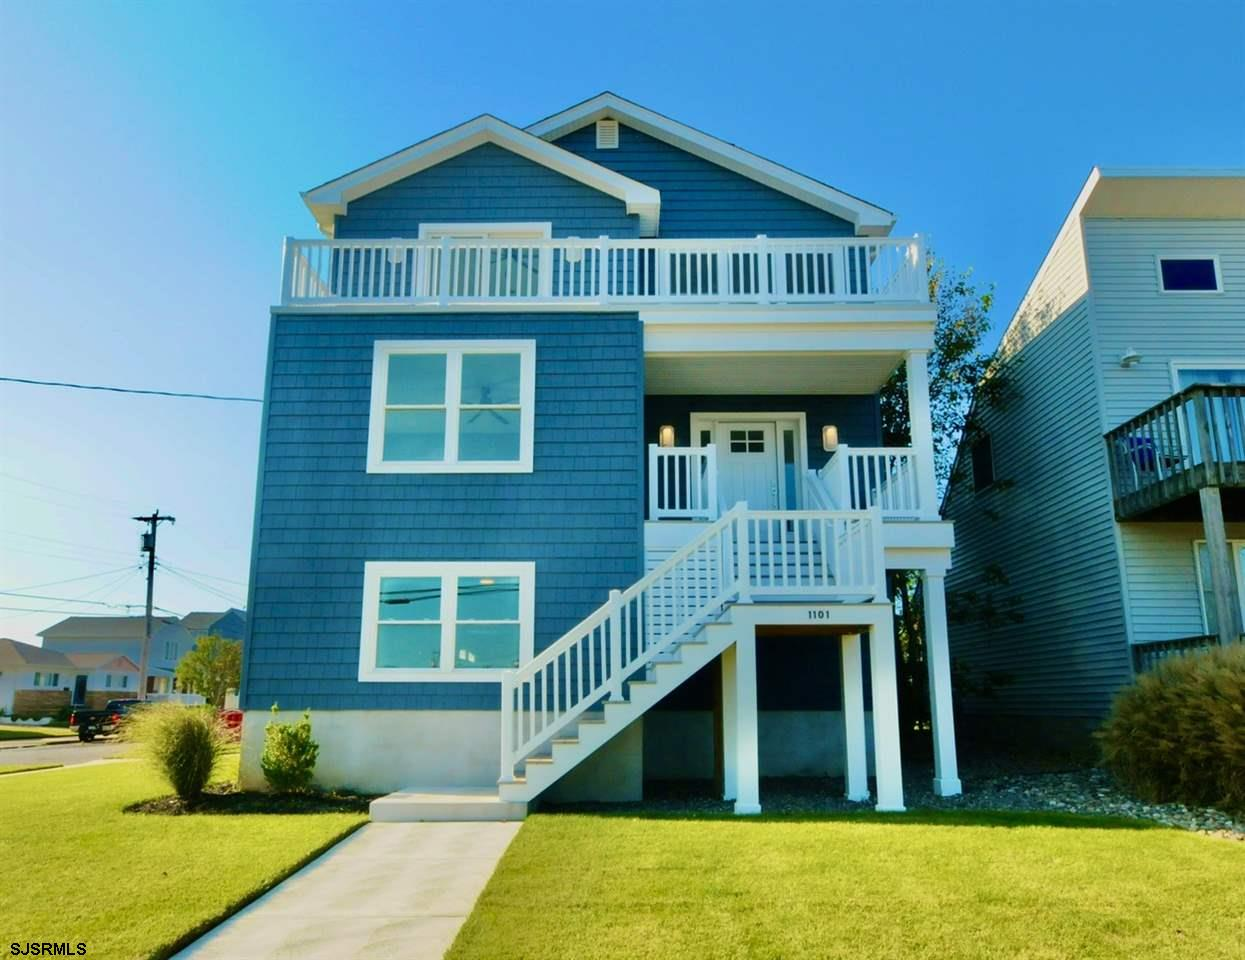 NEW CONSTRUCTION 5 BEDROOM & 4 BATH HOME WITH WATER VIEWS!  Great location with bay views, ocean vie